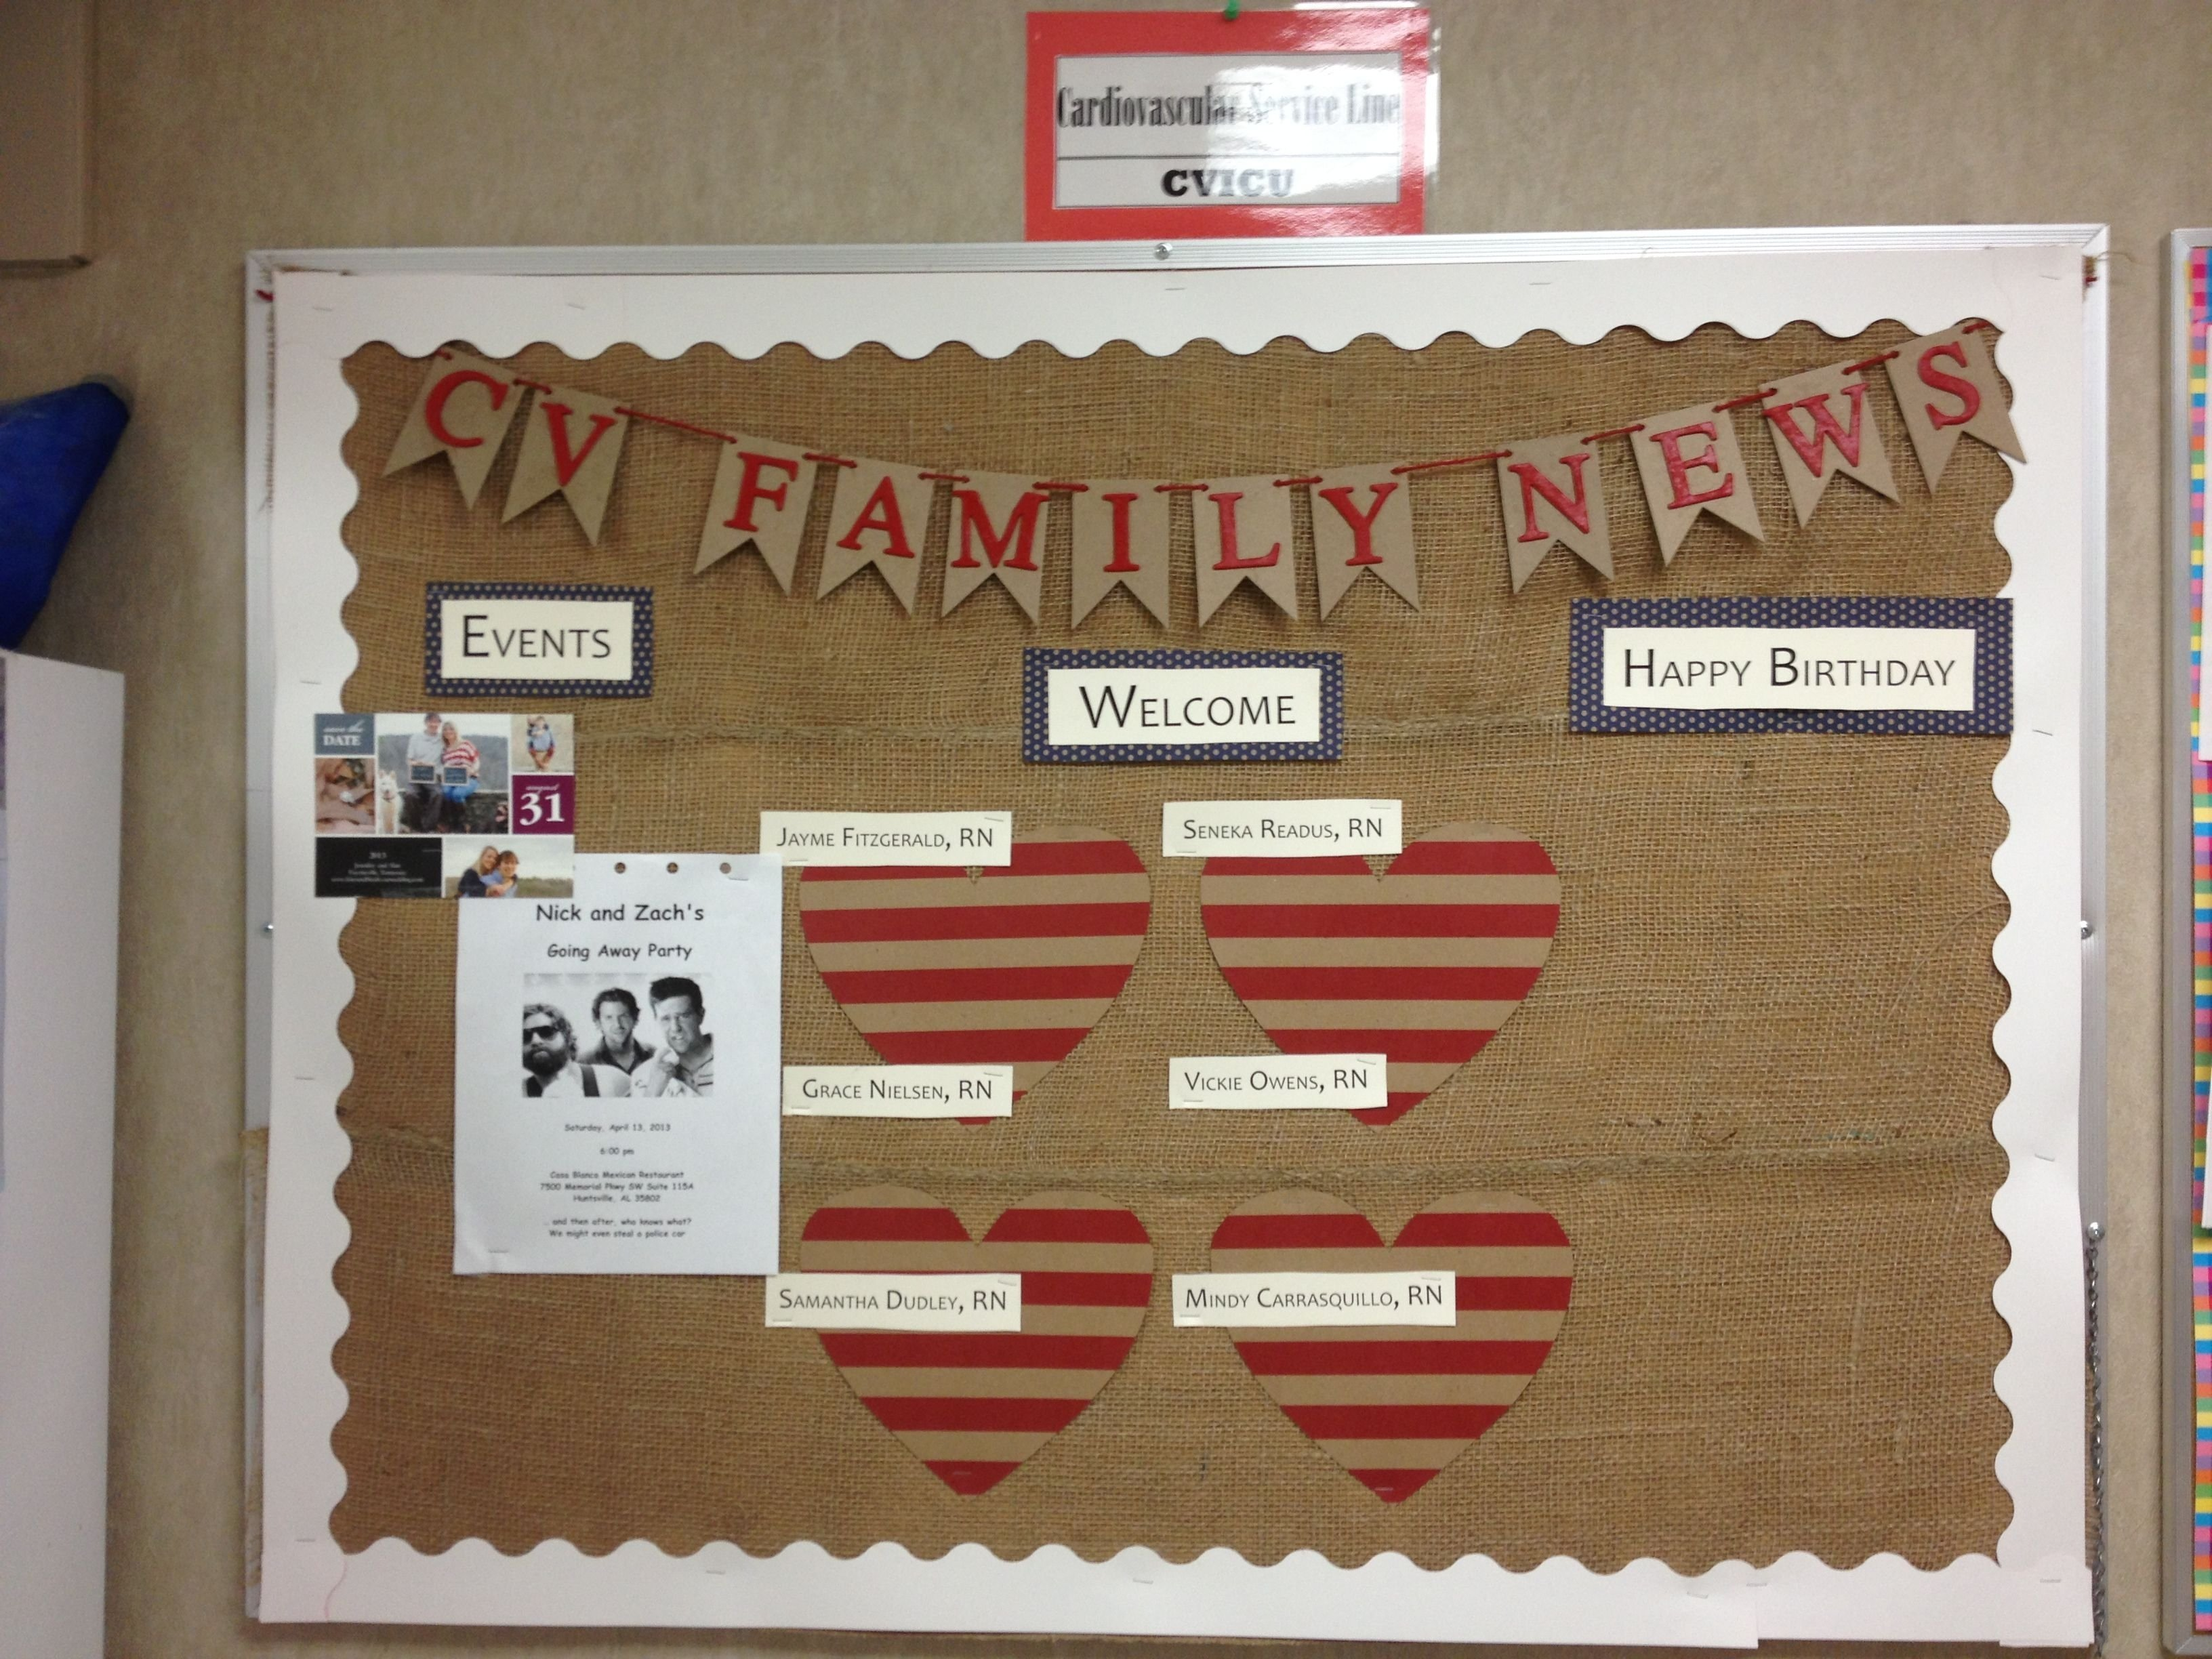 85 bulletin board themes to liven up your workplace bulletin boards